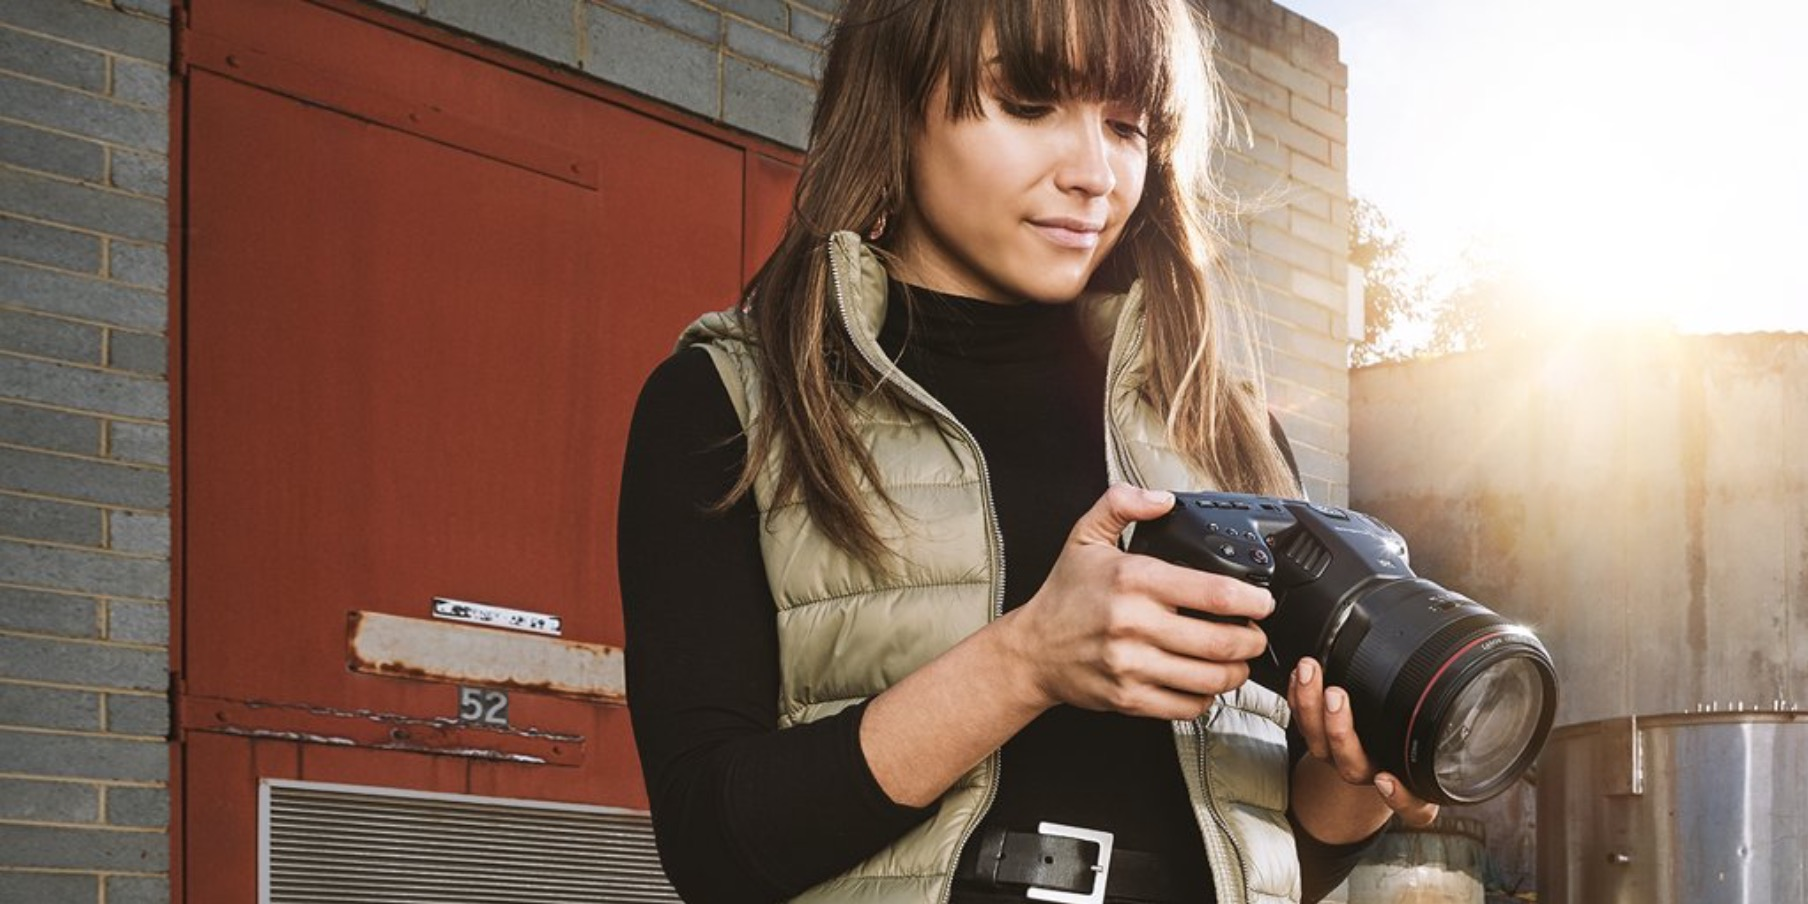 Blackmagic Camera 6 6 Adds New Features Functionality To 4k 6k Pocket Cinema Cameras Digital Photography Review